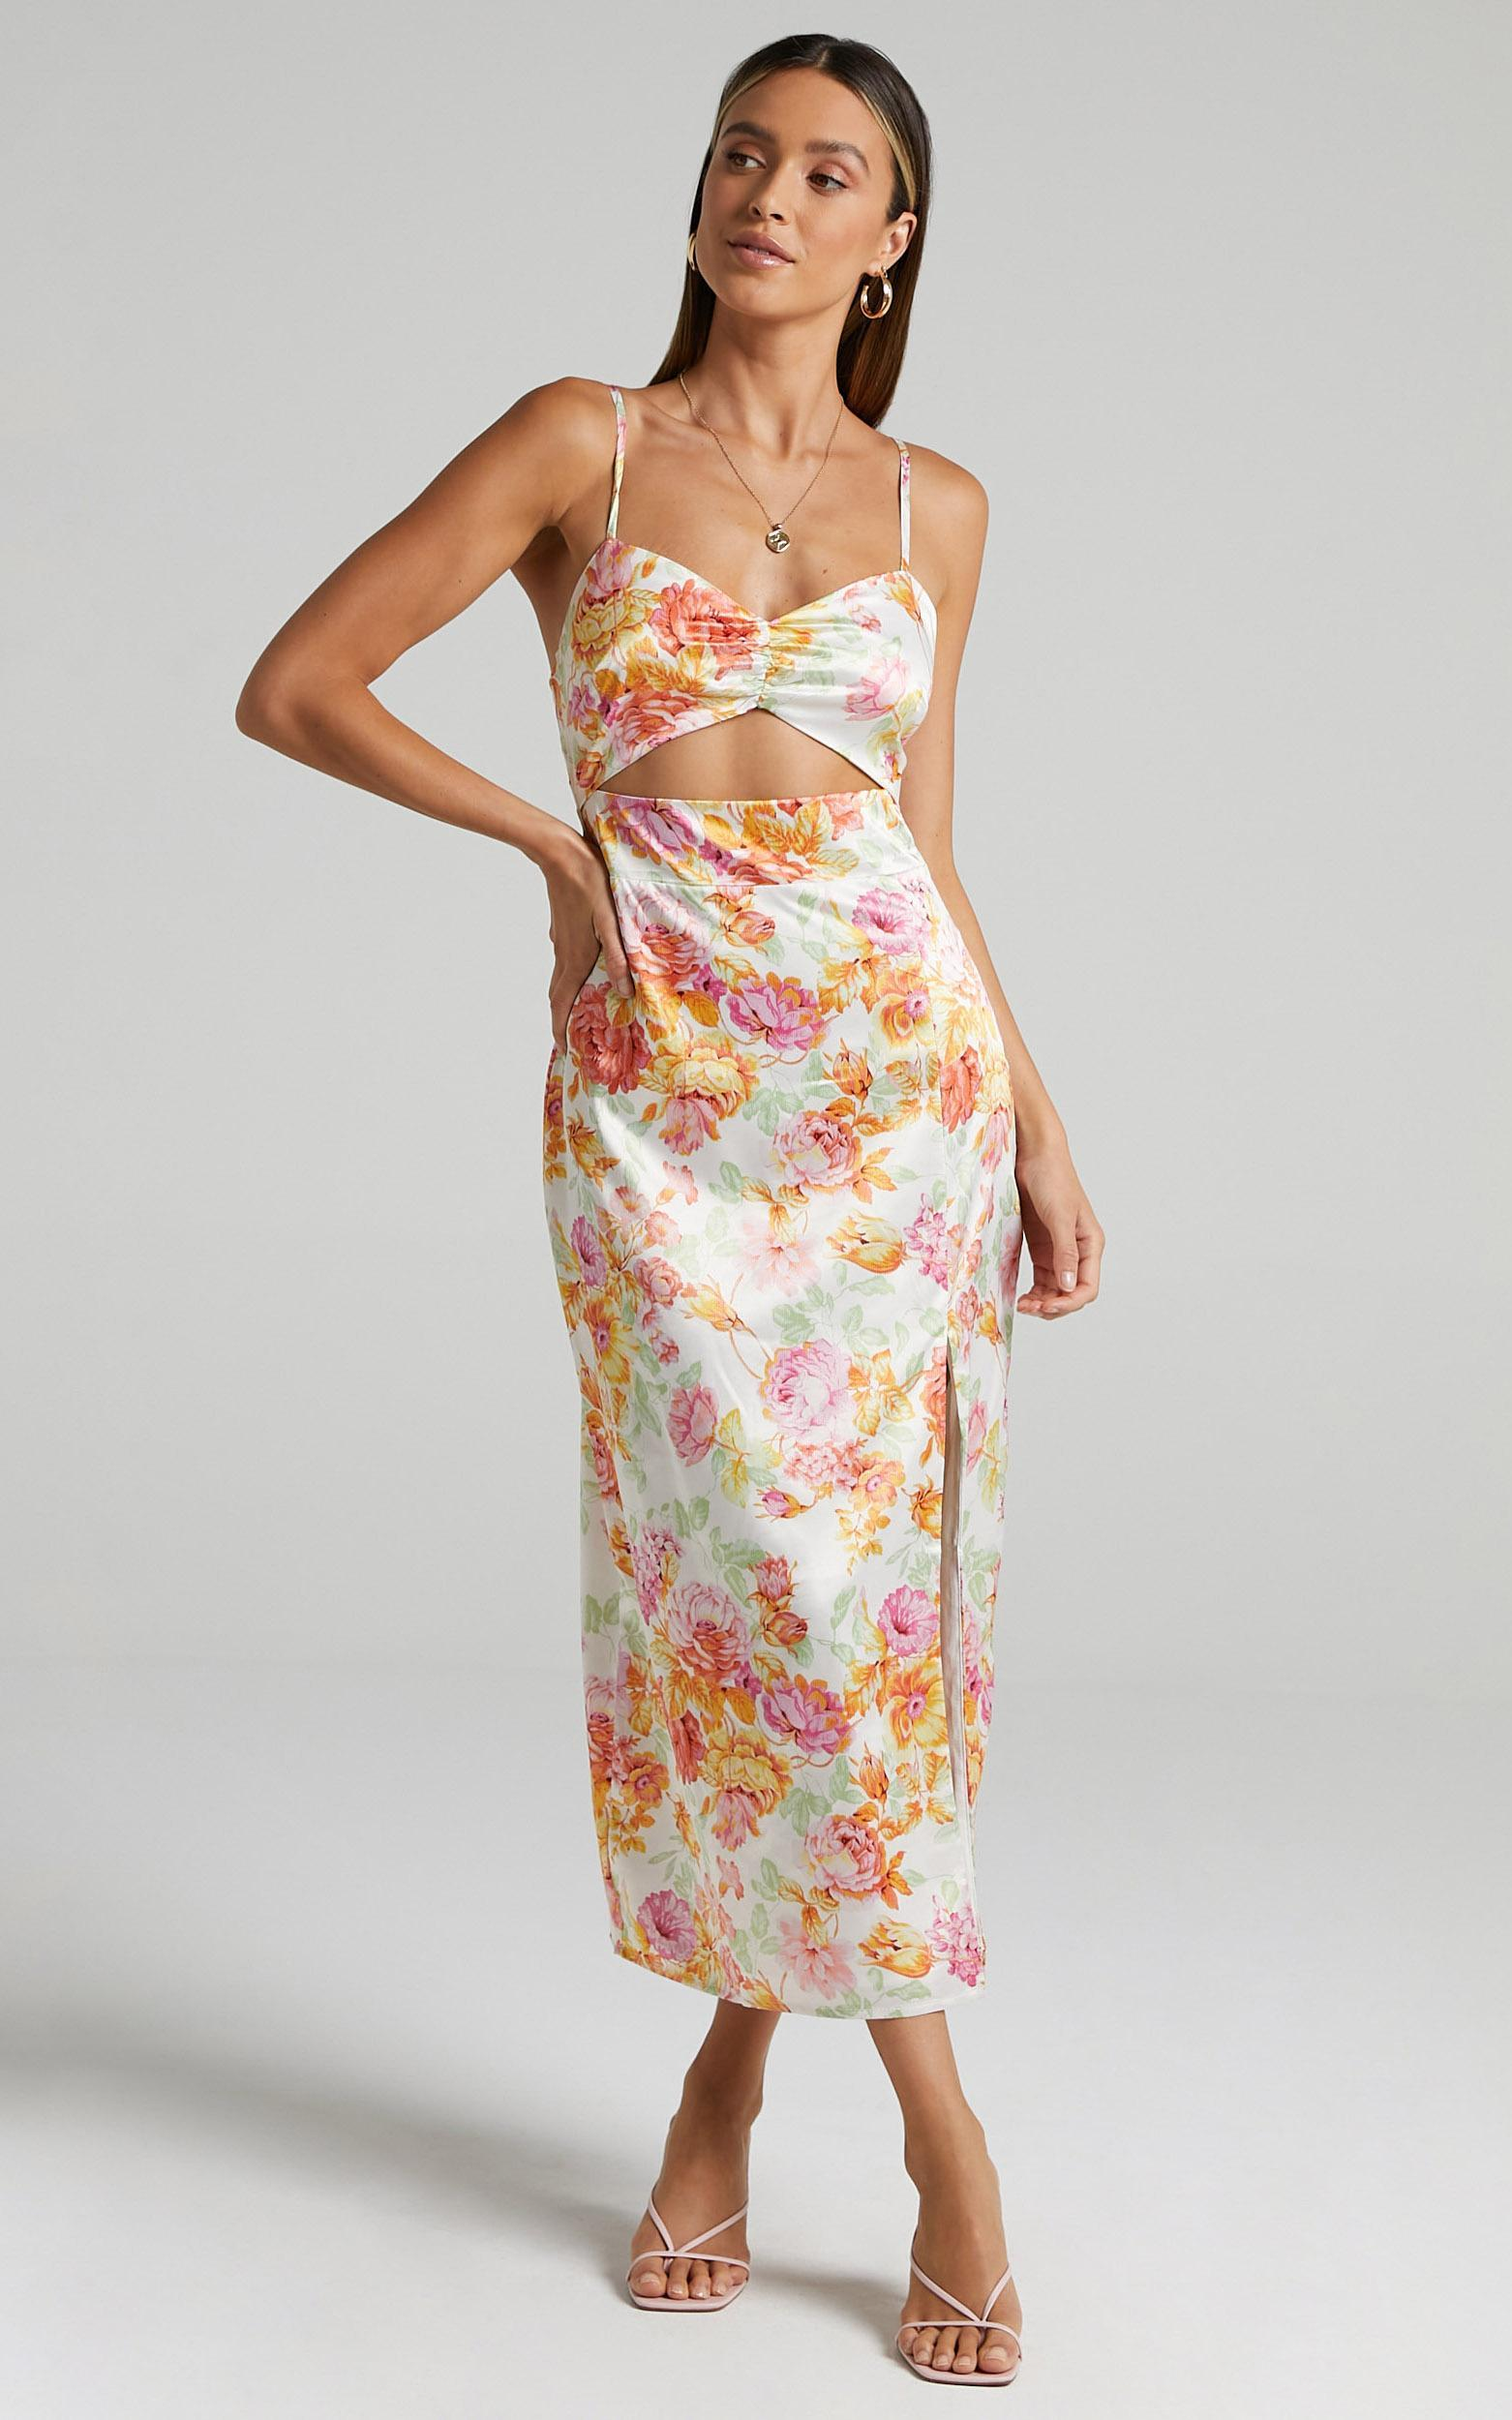 Annabeth Dress in Romantic Floral - 6 (XS), Multi, hi-res image number null